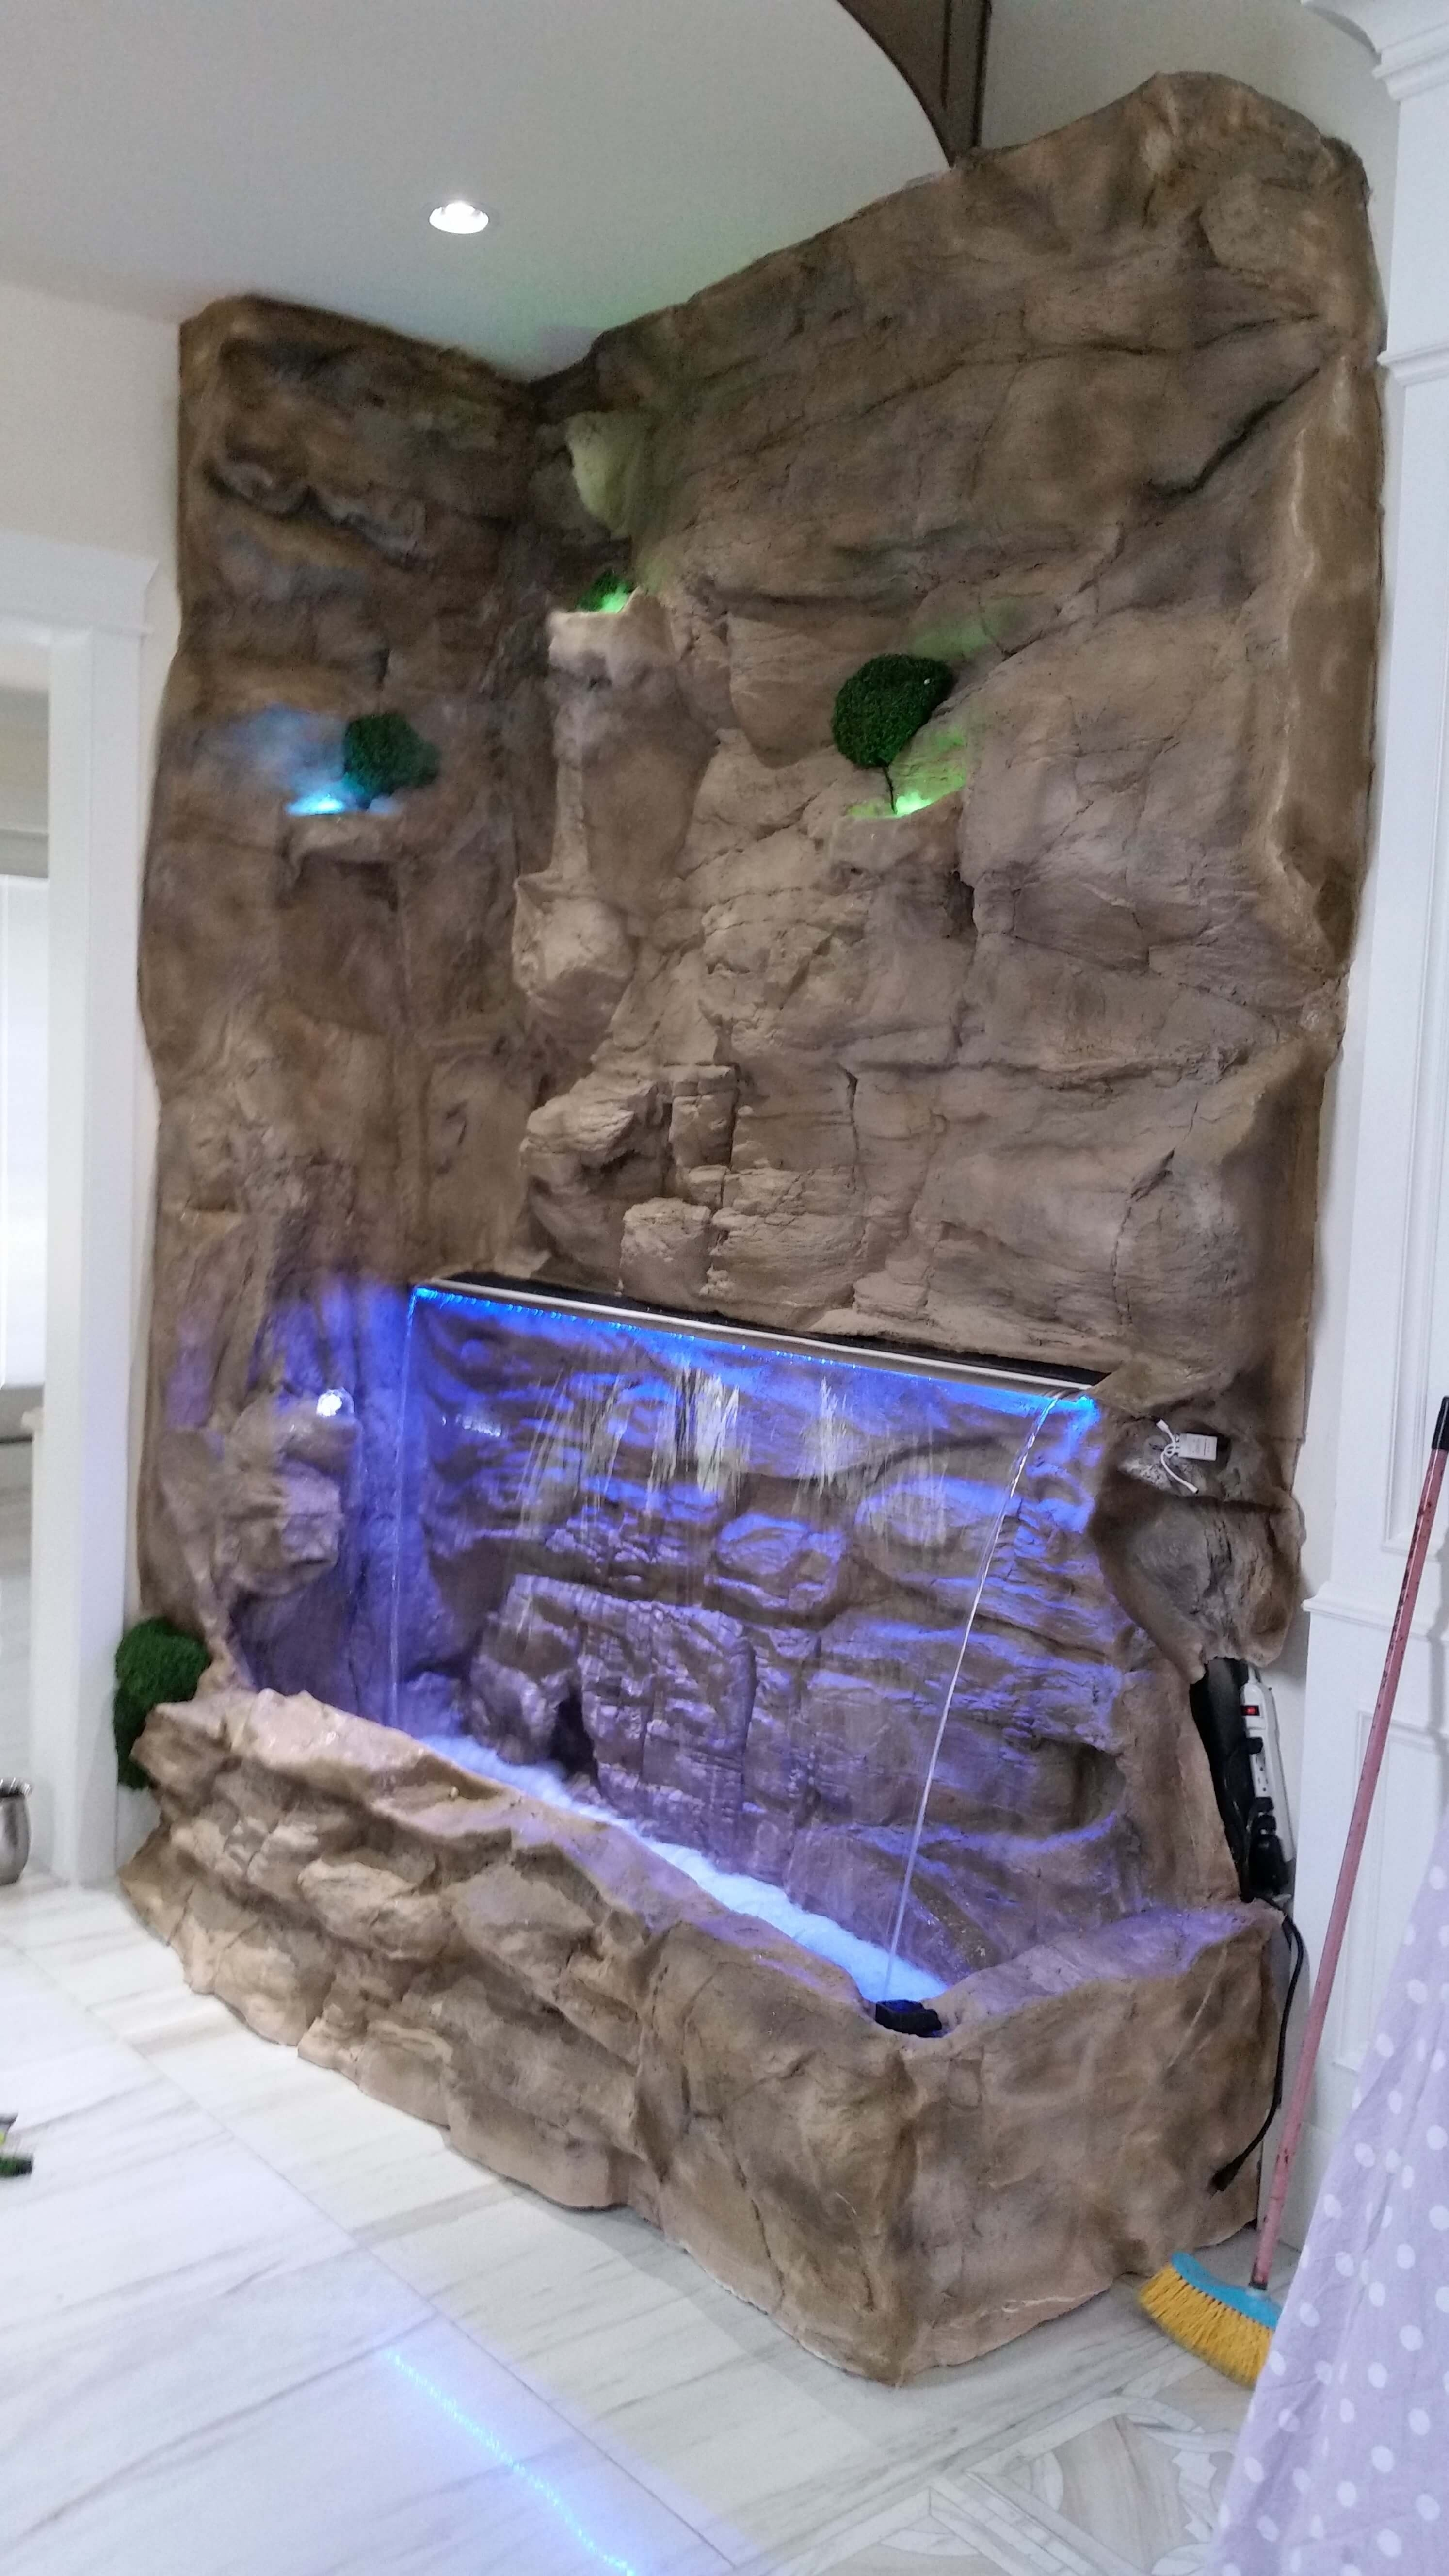 Outdoor And Patio: Rock Wall Fountains Indoor Ares With Lighting Within Outdoor Rock Wall Lighting (View 9 of 15)